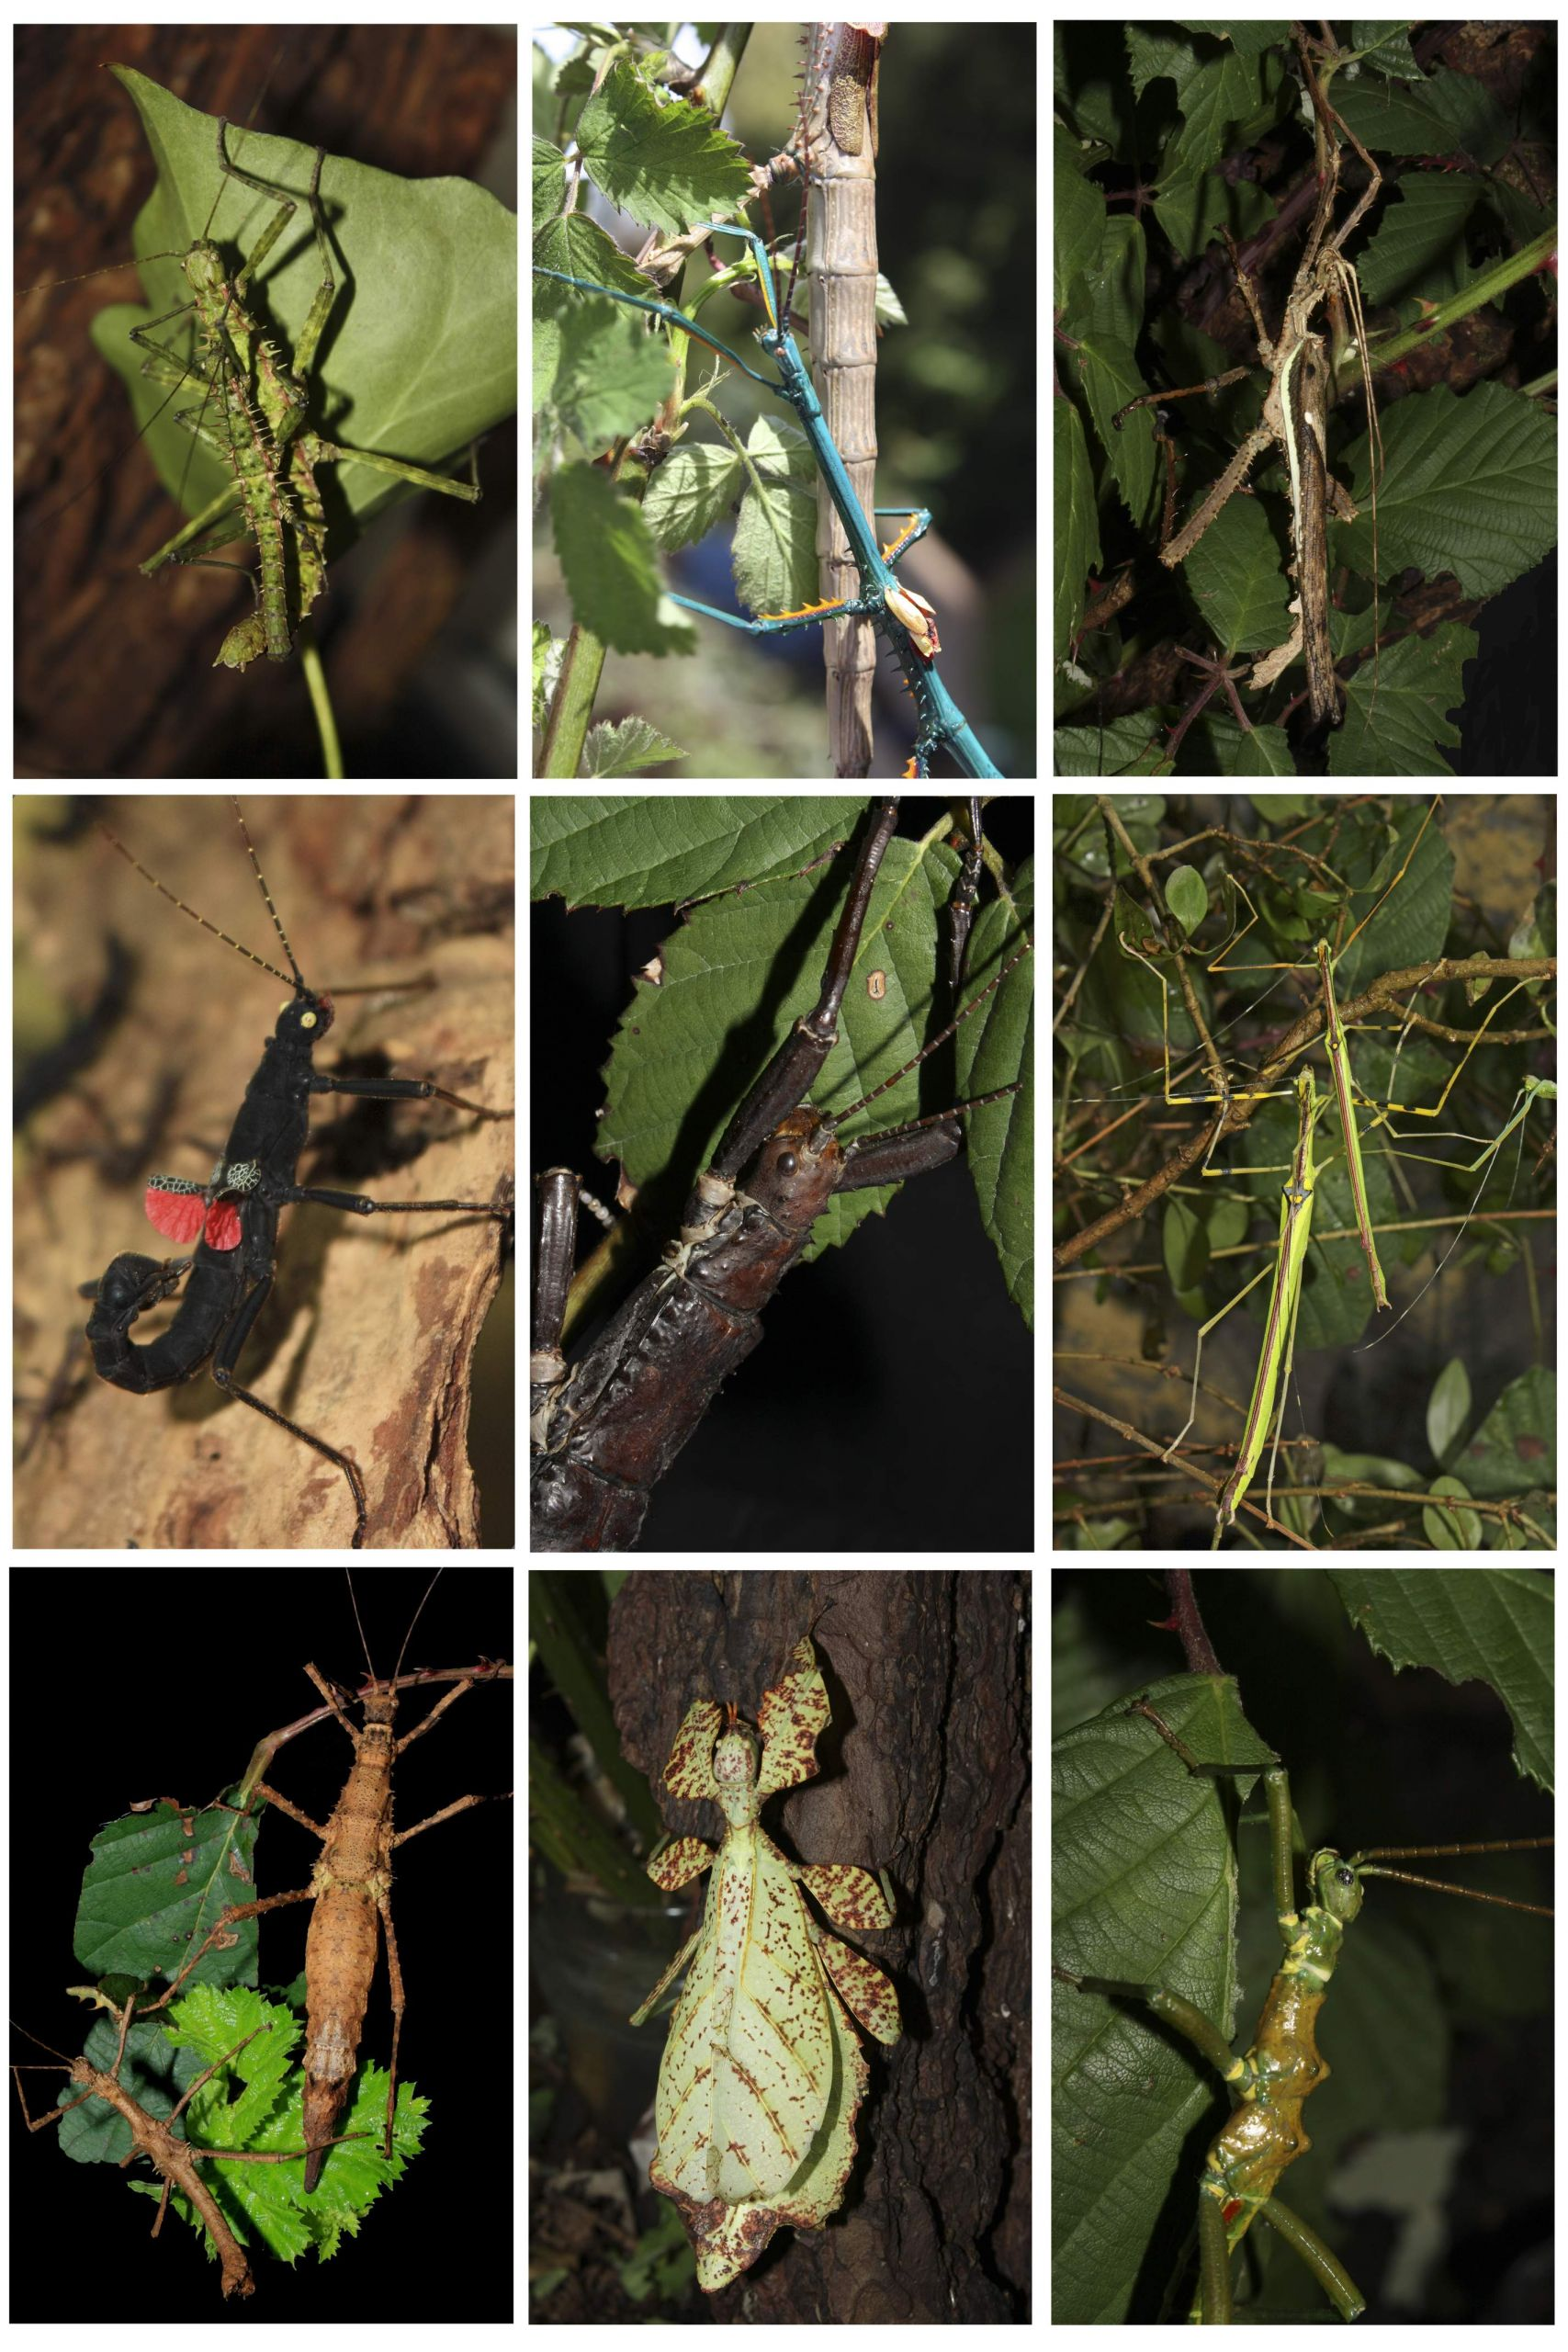 Phasmatodea overview